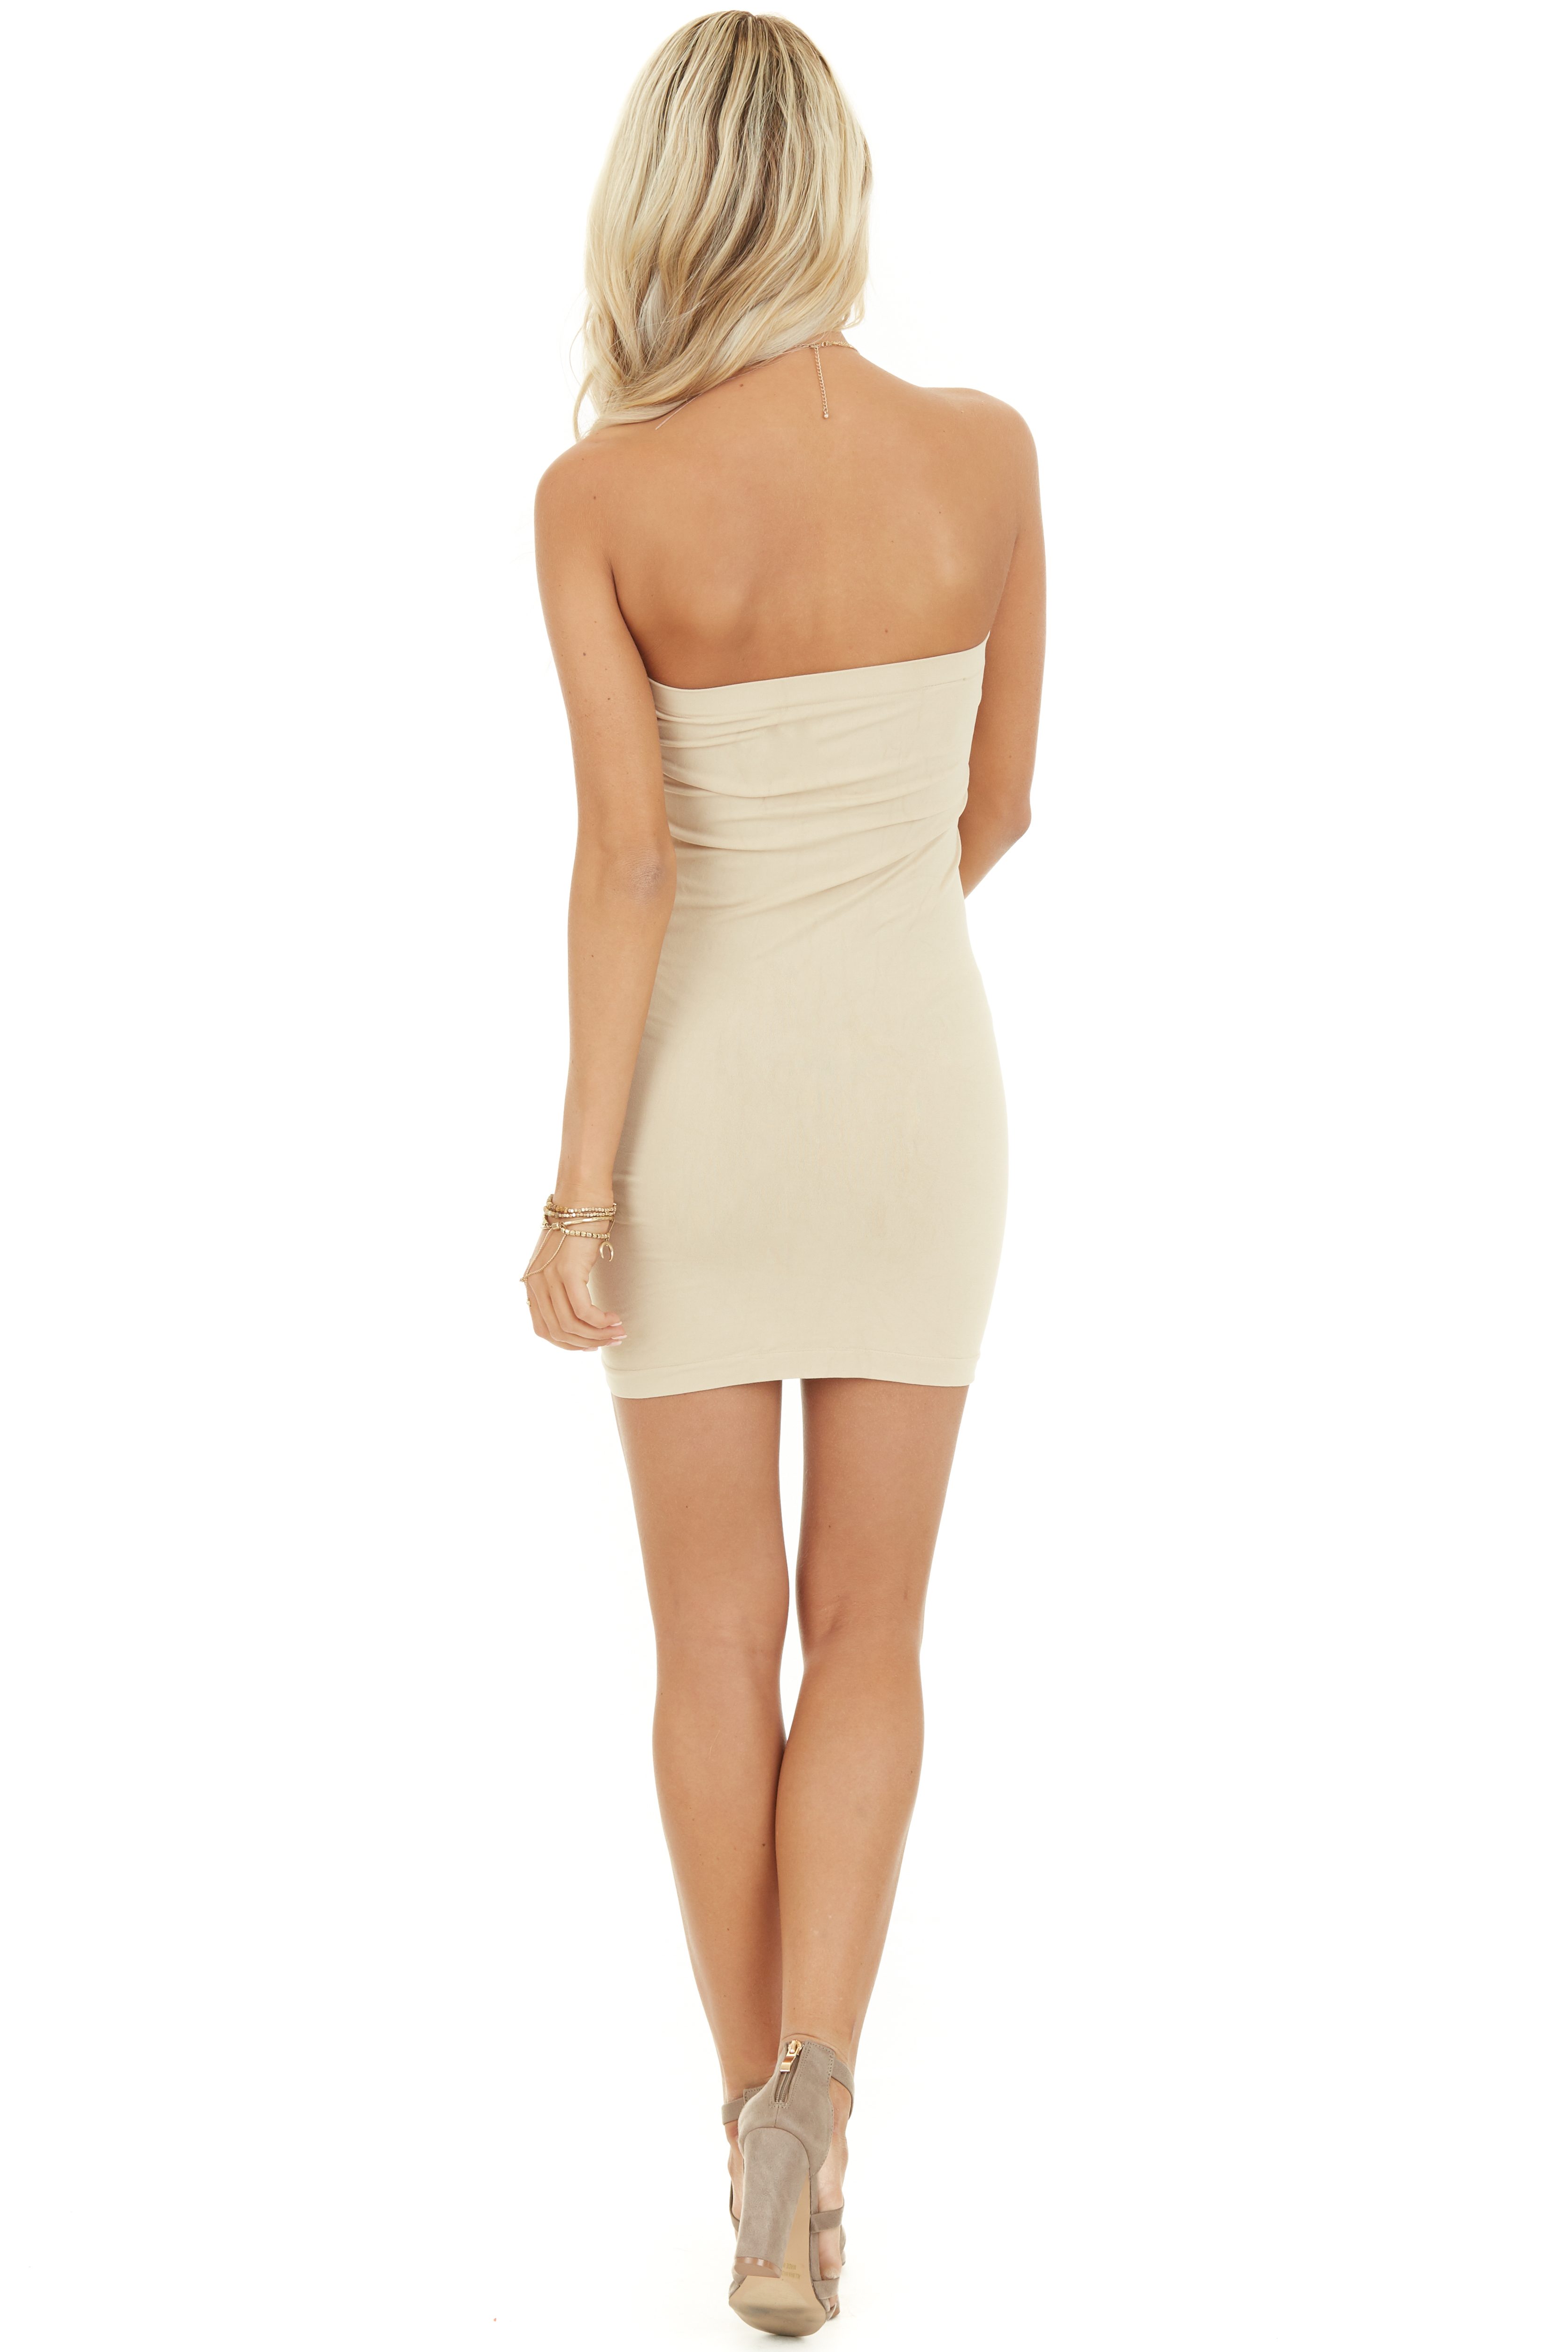 Stone Seamless Tube Dress Undergarment back